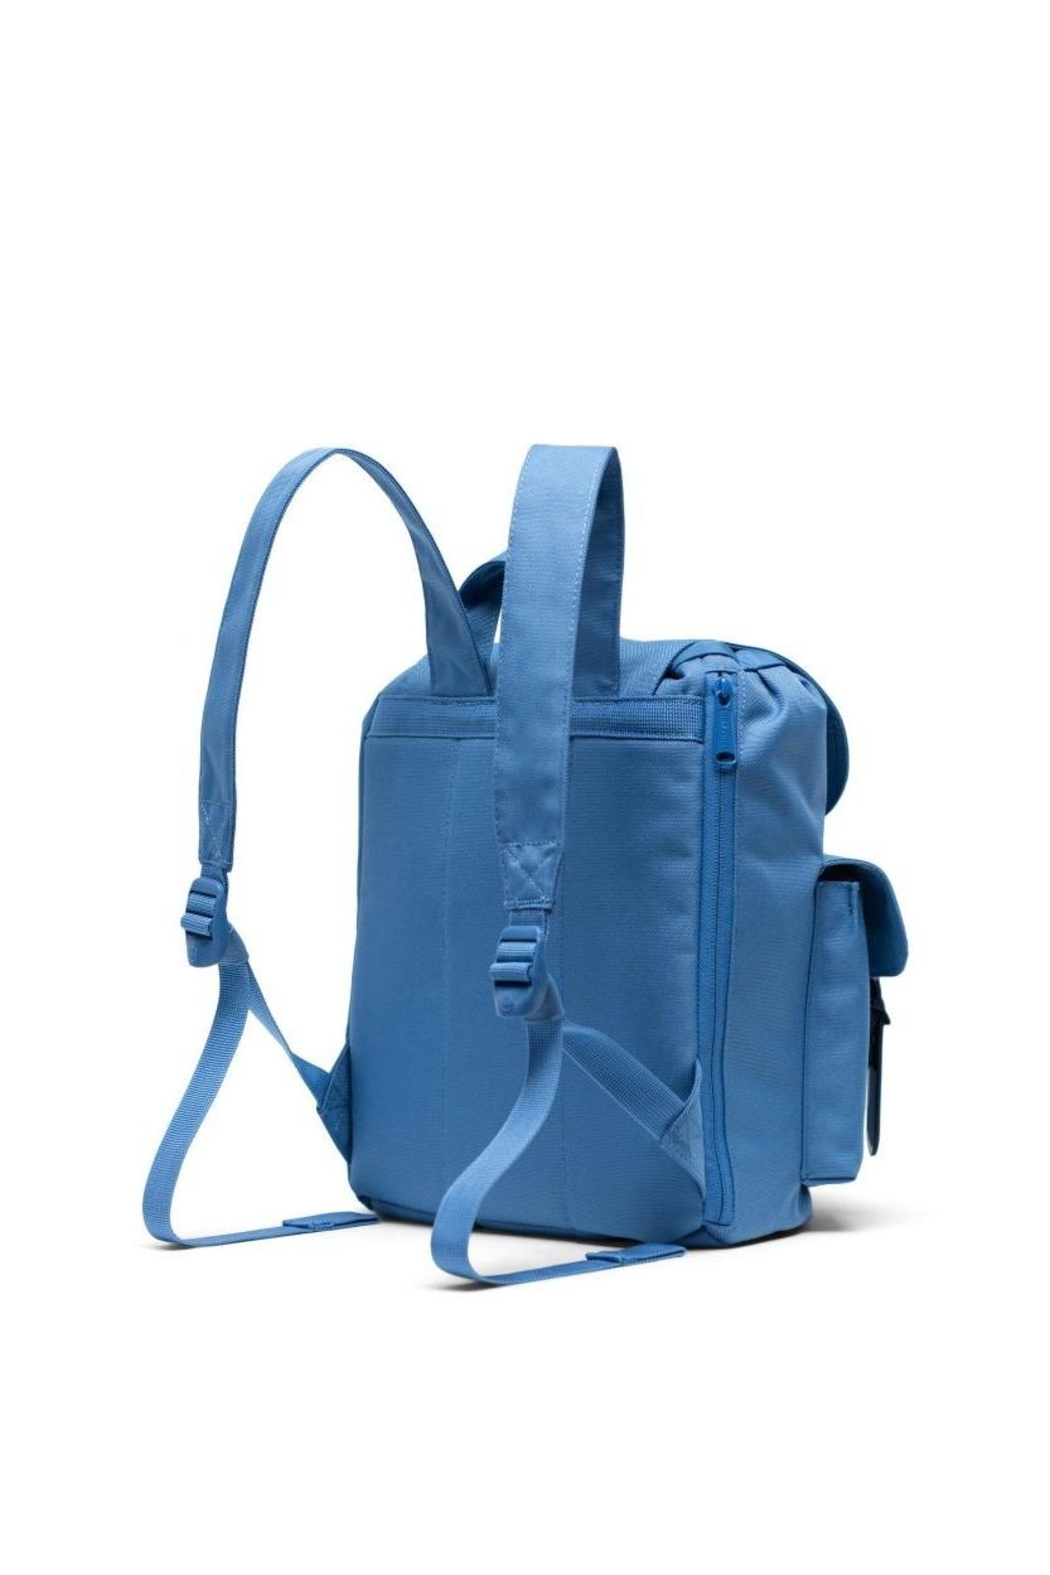 Herschel Supply Co. Small Blue Backpack - Back Cropped Image